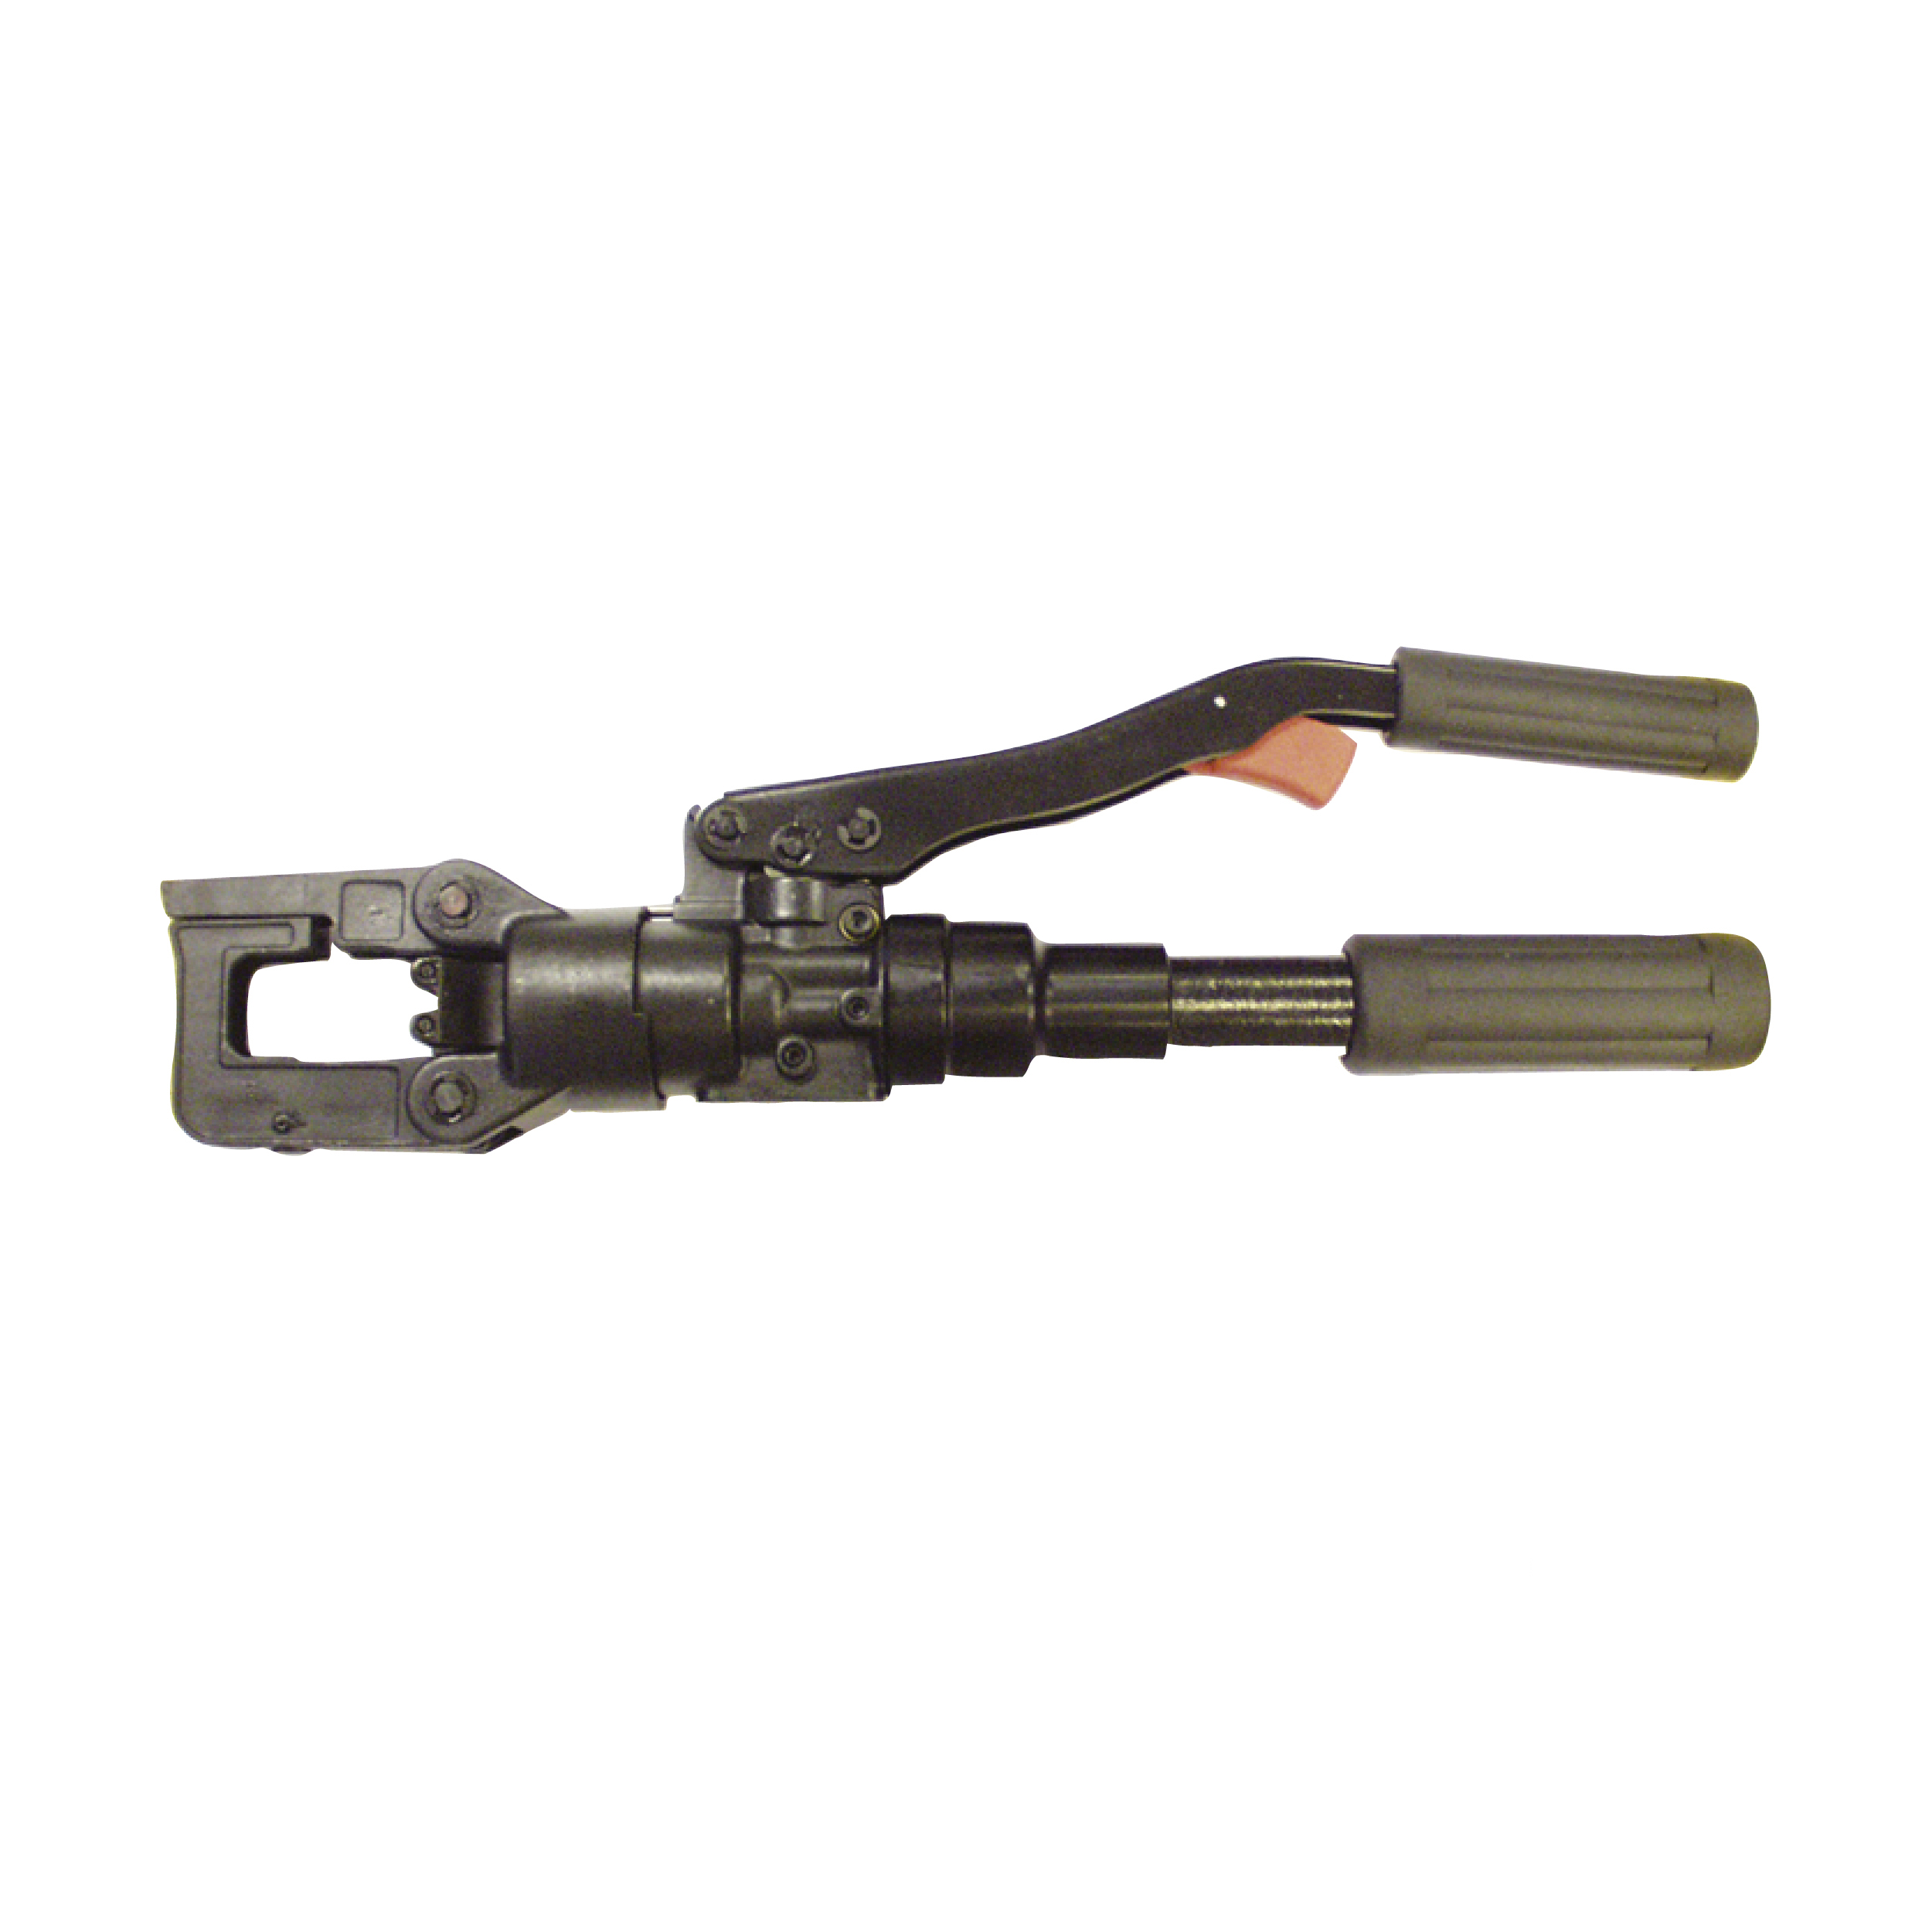 Elpress V611 Hydraulic Crimping Tool (Cu 10-240mm², C-sleeves 6-50mm²)